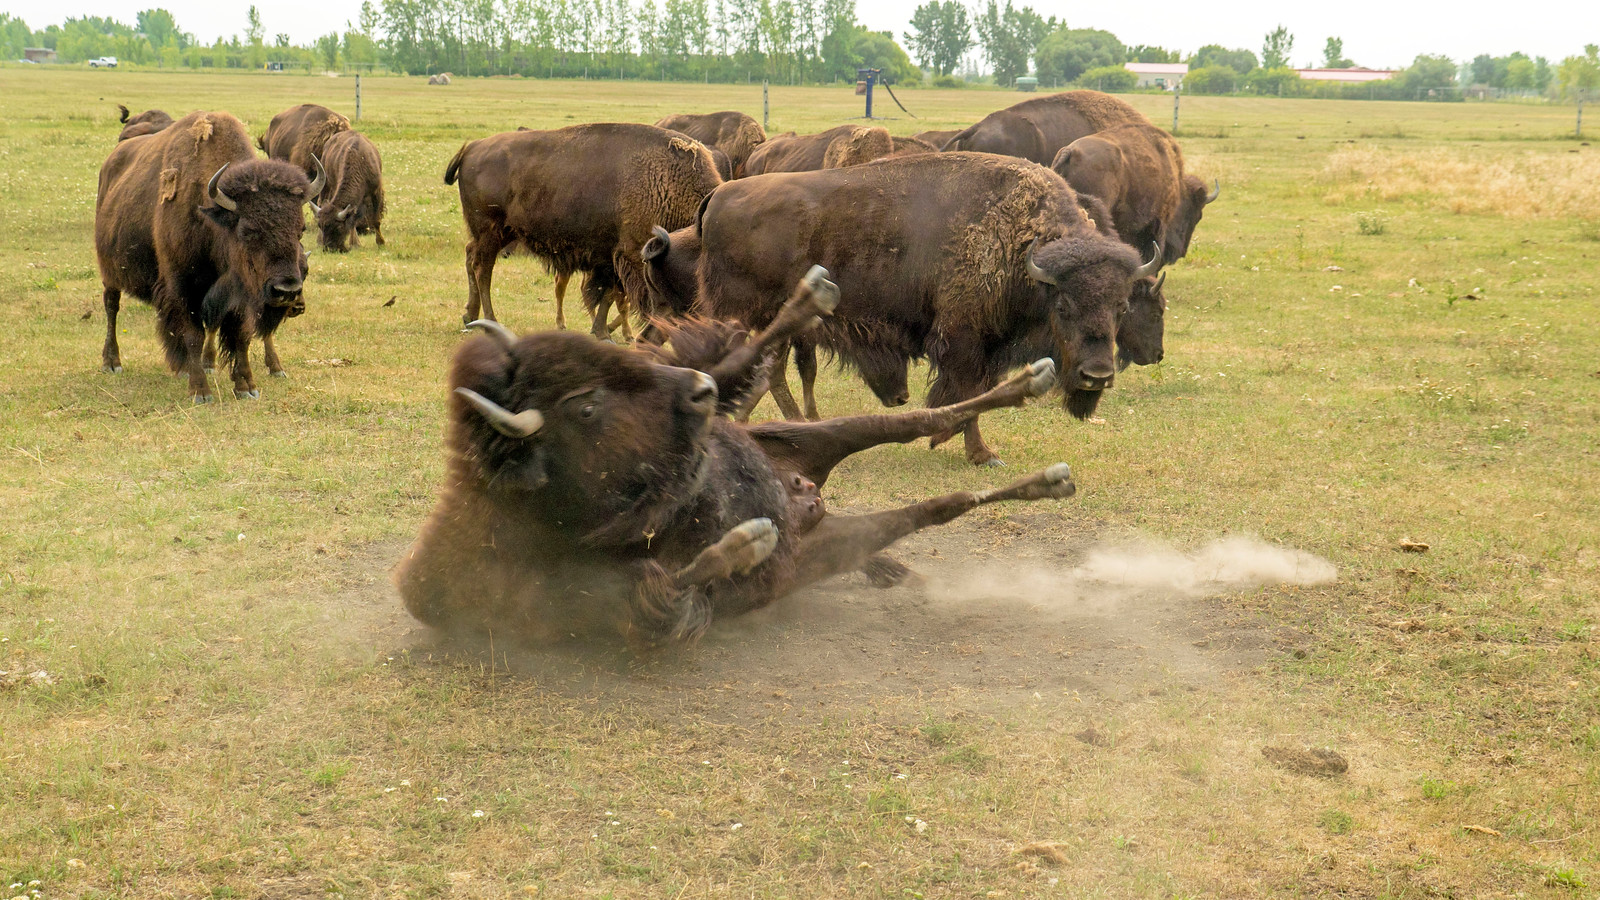 Bison Safari at FortWhyte Alive, Winnipeg - Things to Do in Winnipeg: A Couples Getaway Guide